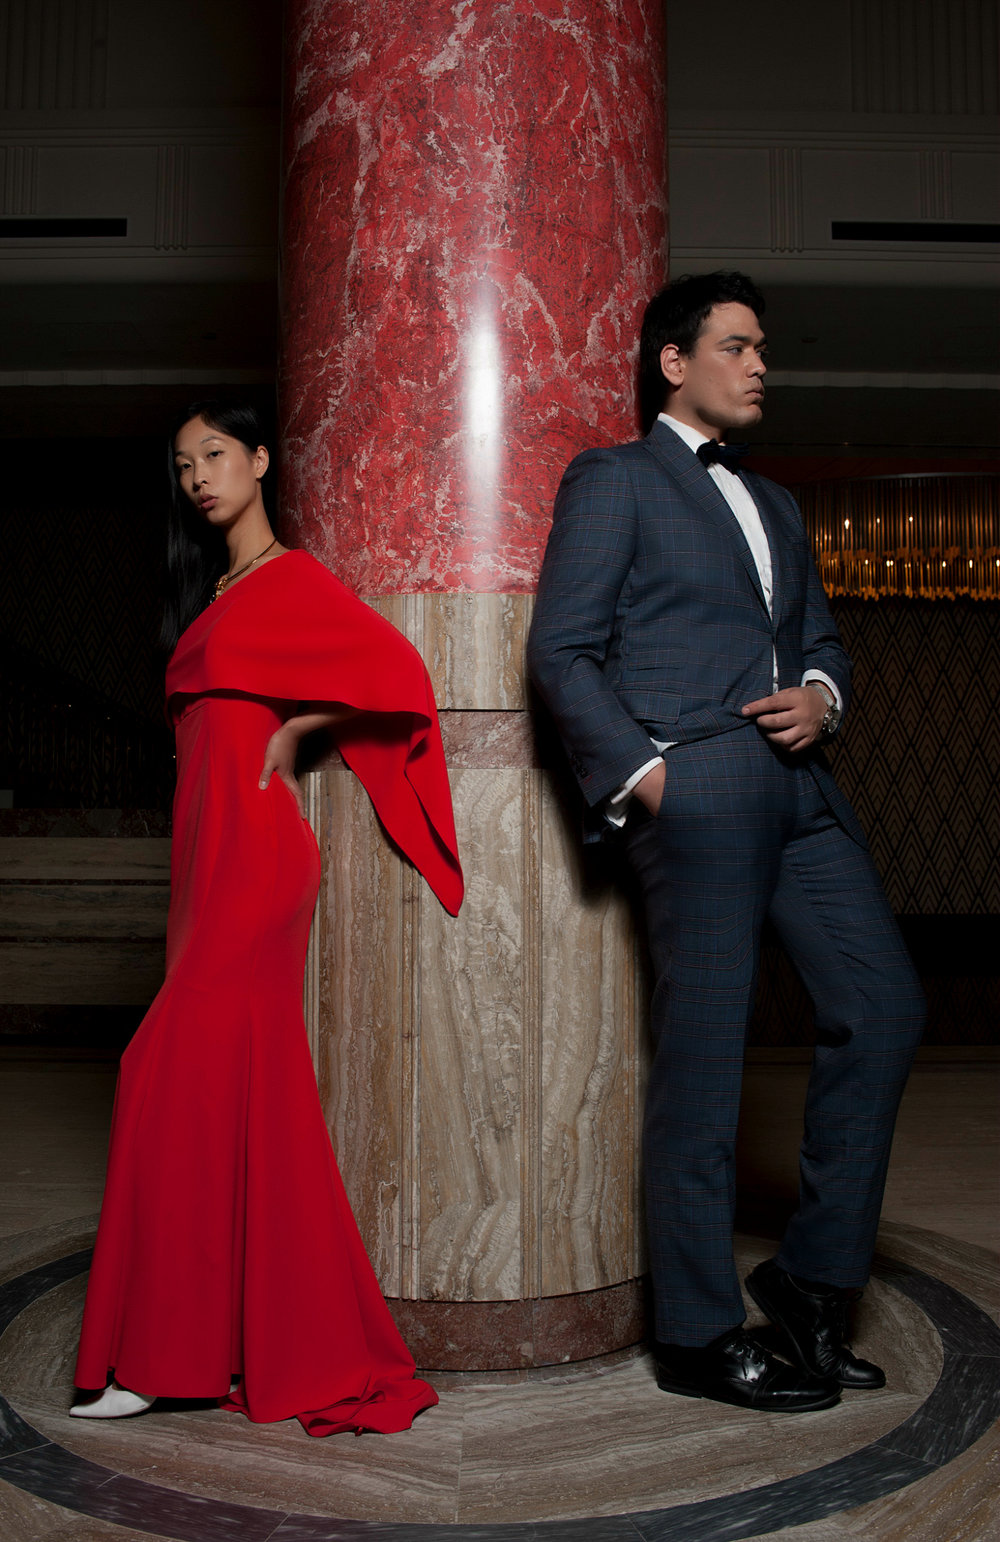 Style | EditorialWE'RE BACK AND READY TO SLAY! - We're back and ready to Slay 2017! Starting the year off in style in our first duo editorial for 2017 shot at the Primus Hotel Sydney by friend and photographer Mike Cooper.